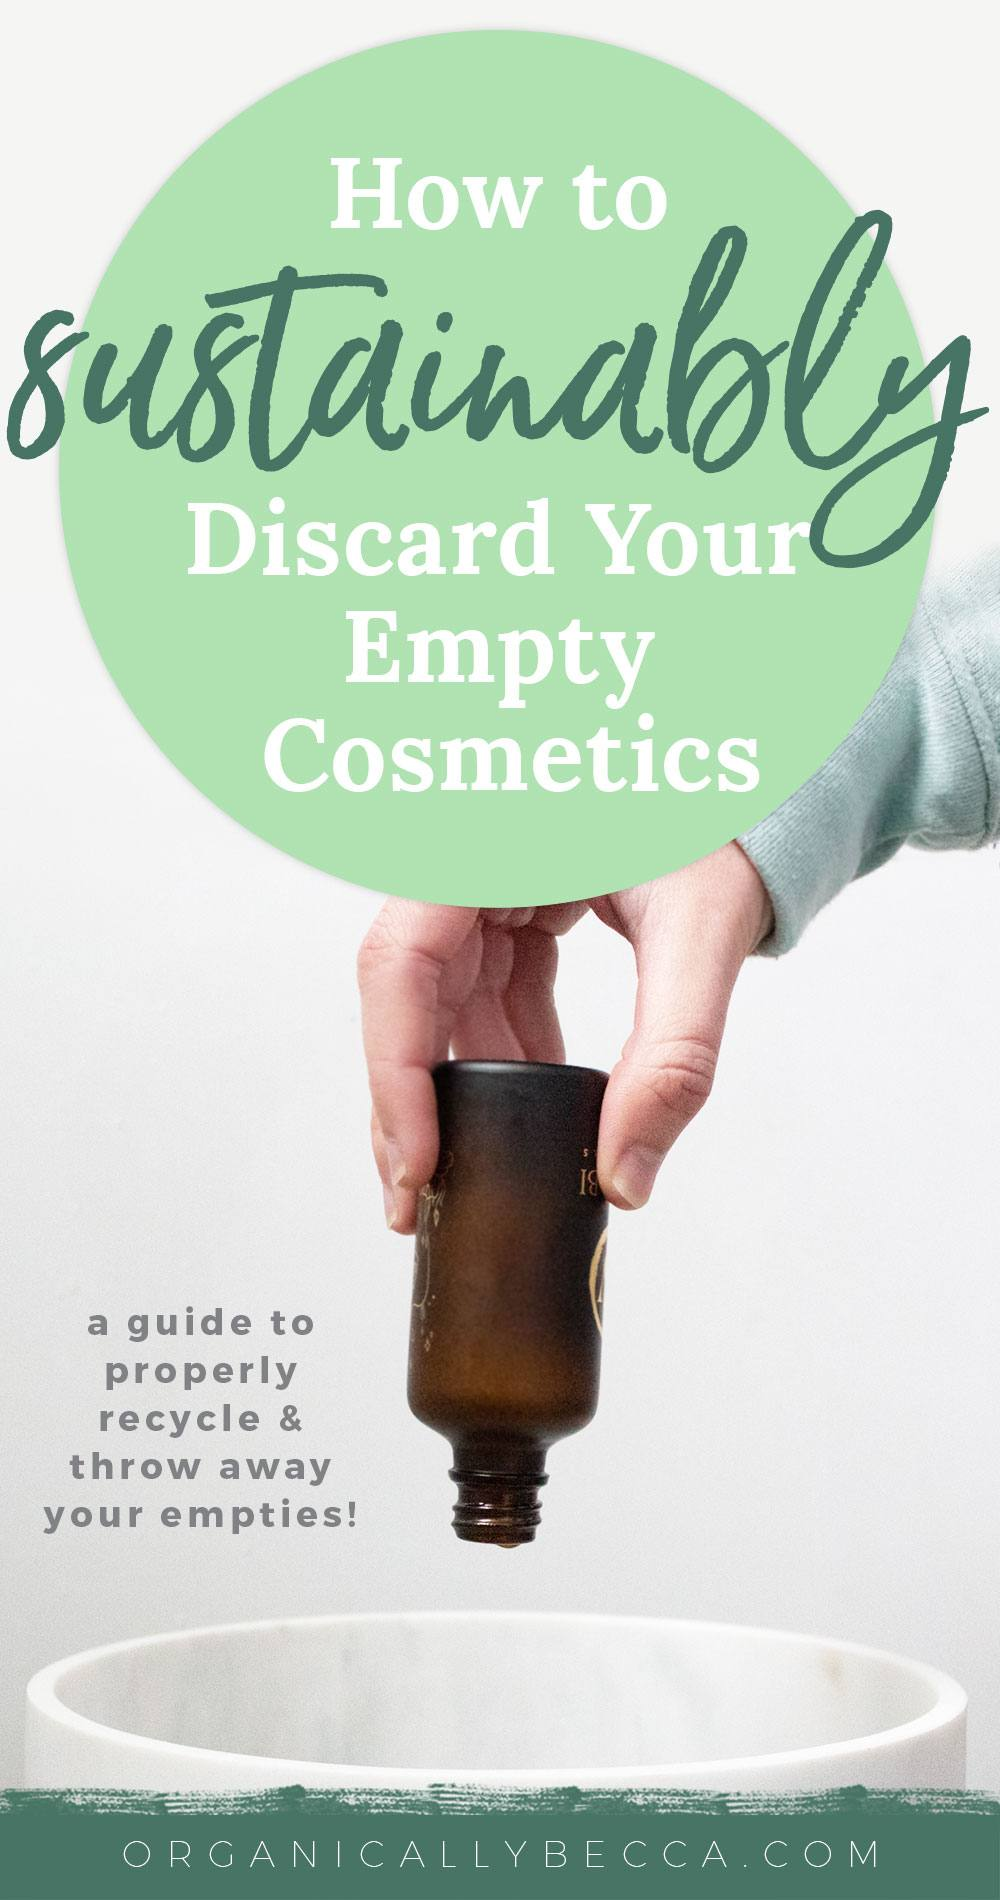 Pin me on Pinterest!